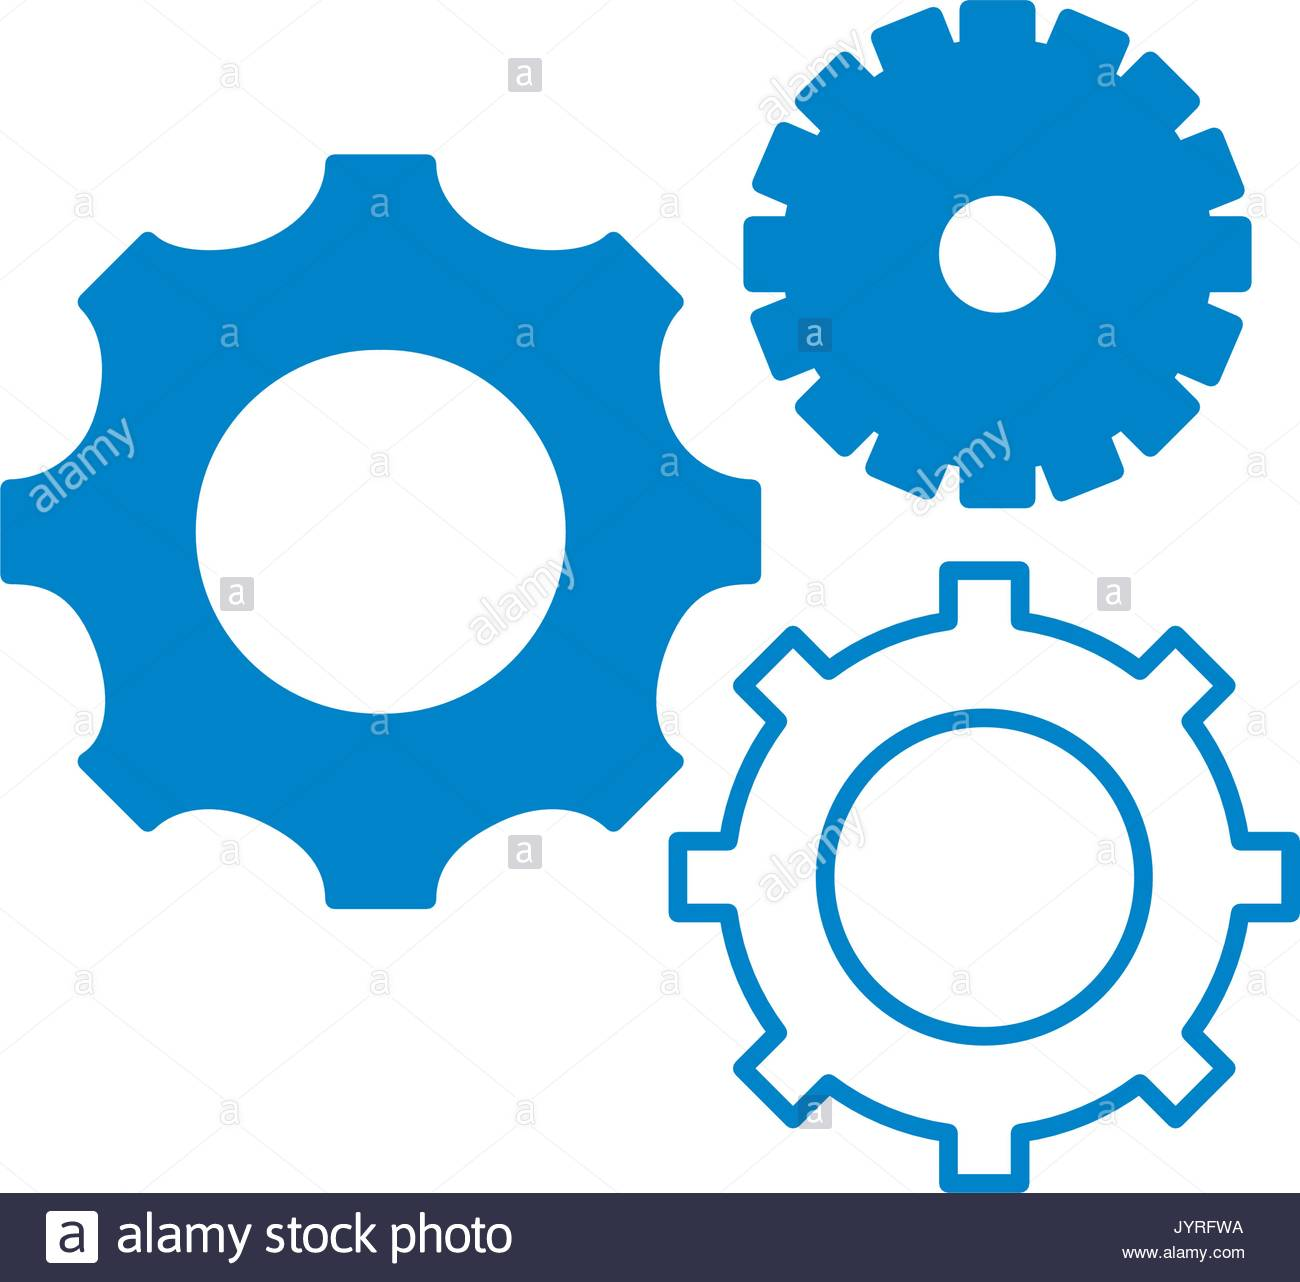 1300x1282 Silhouette Gears Engineering Industry Process Technology Stock